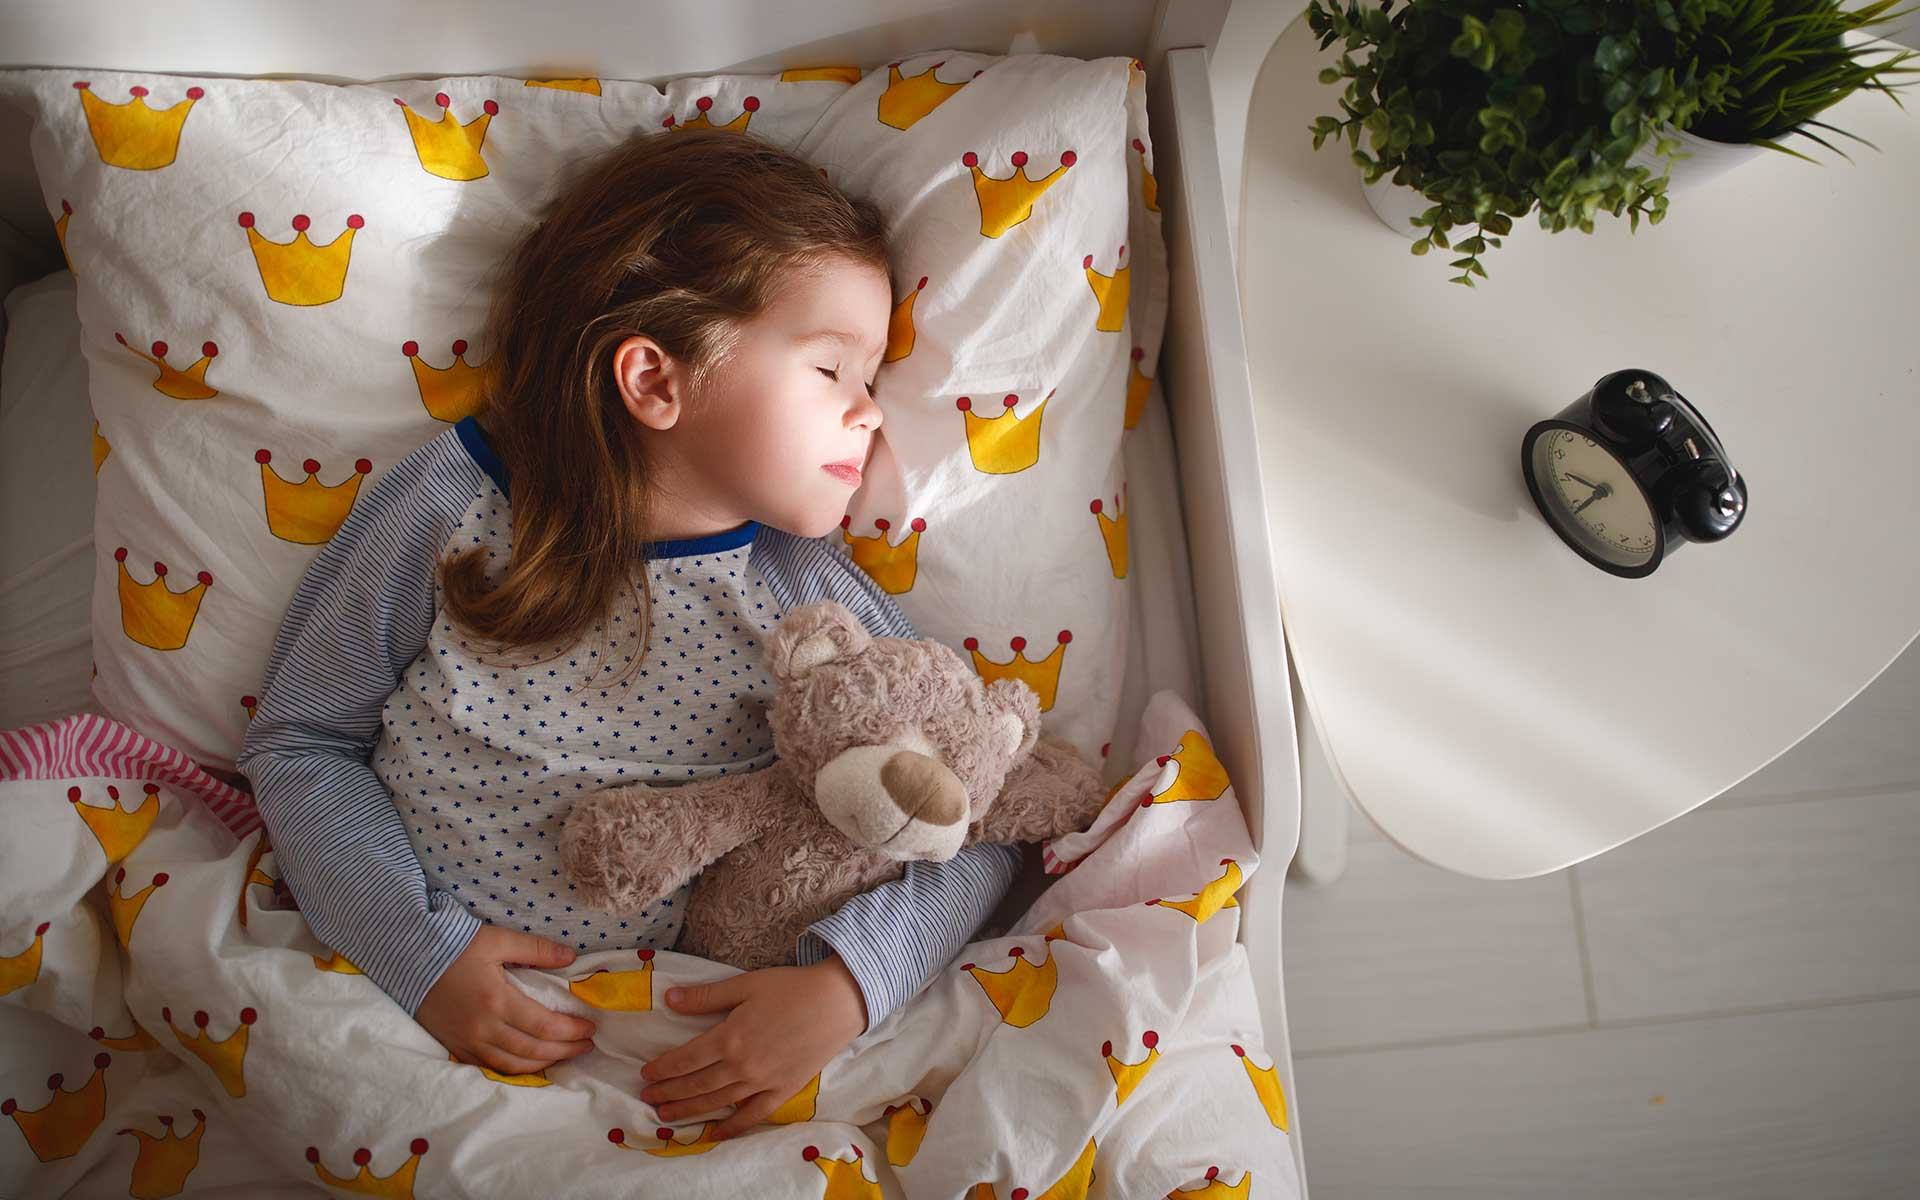 Eight hour sleep as an immunity booster for a child